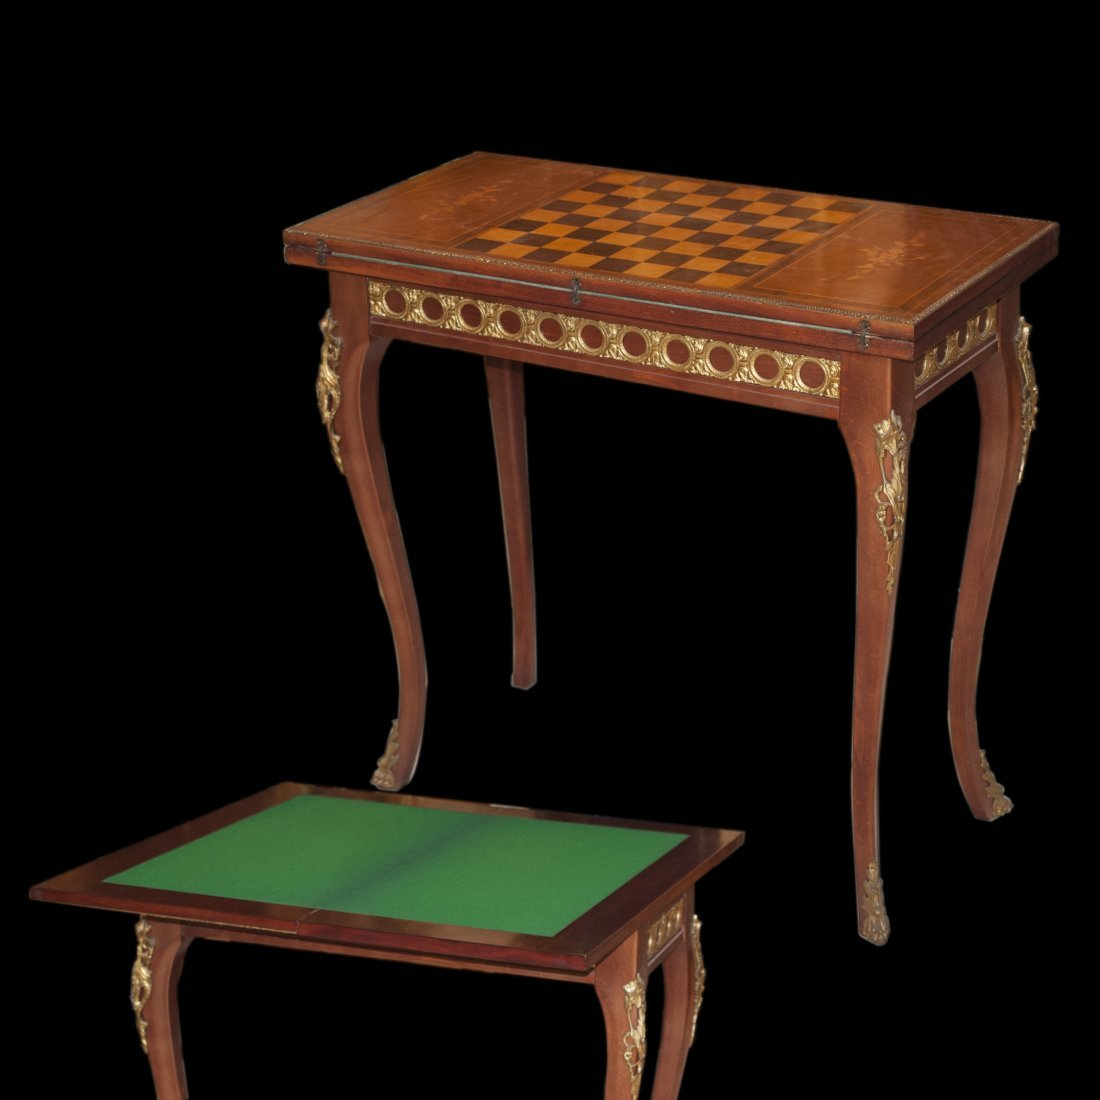 Wooden Game Table